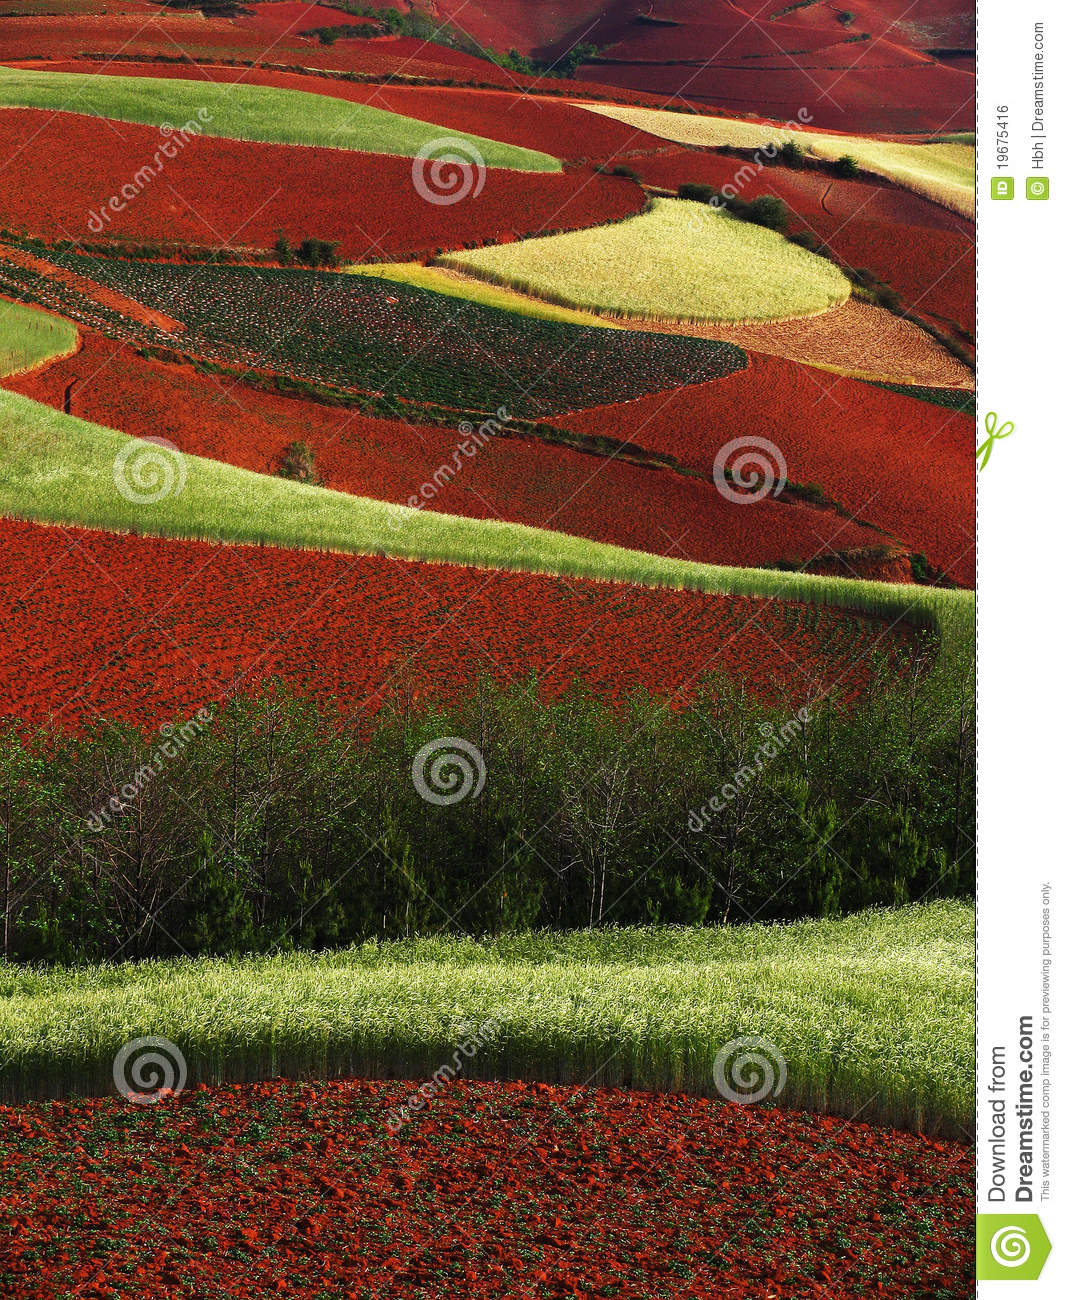 Yunnan red soil dry royalty free stock image image 19675416 for What does soil contain